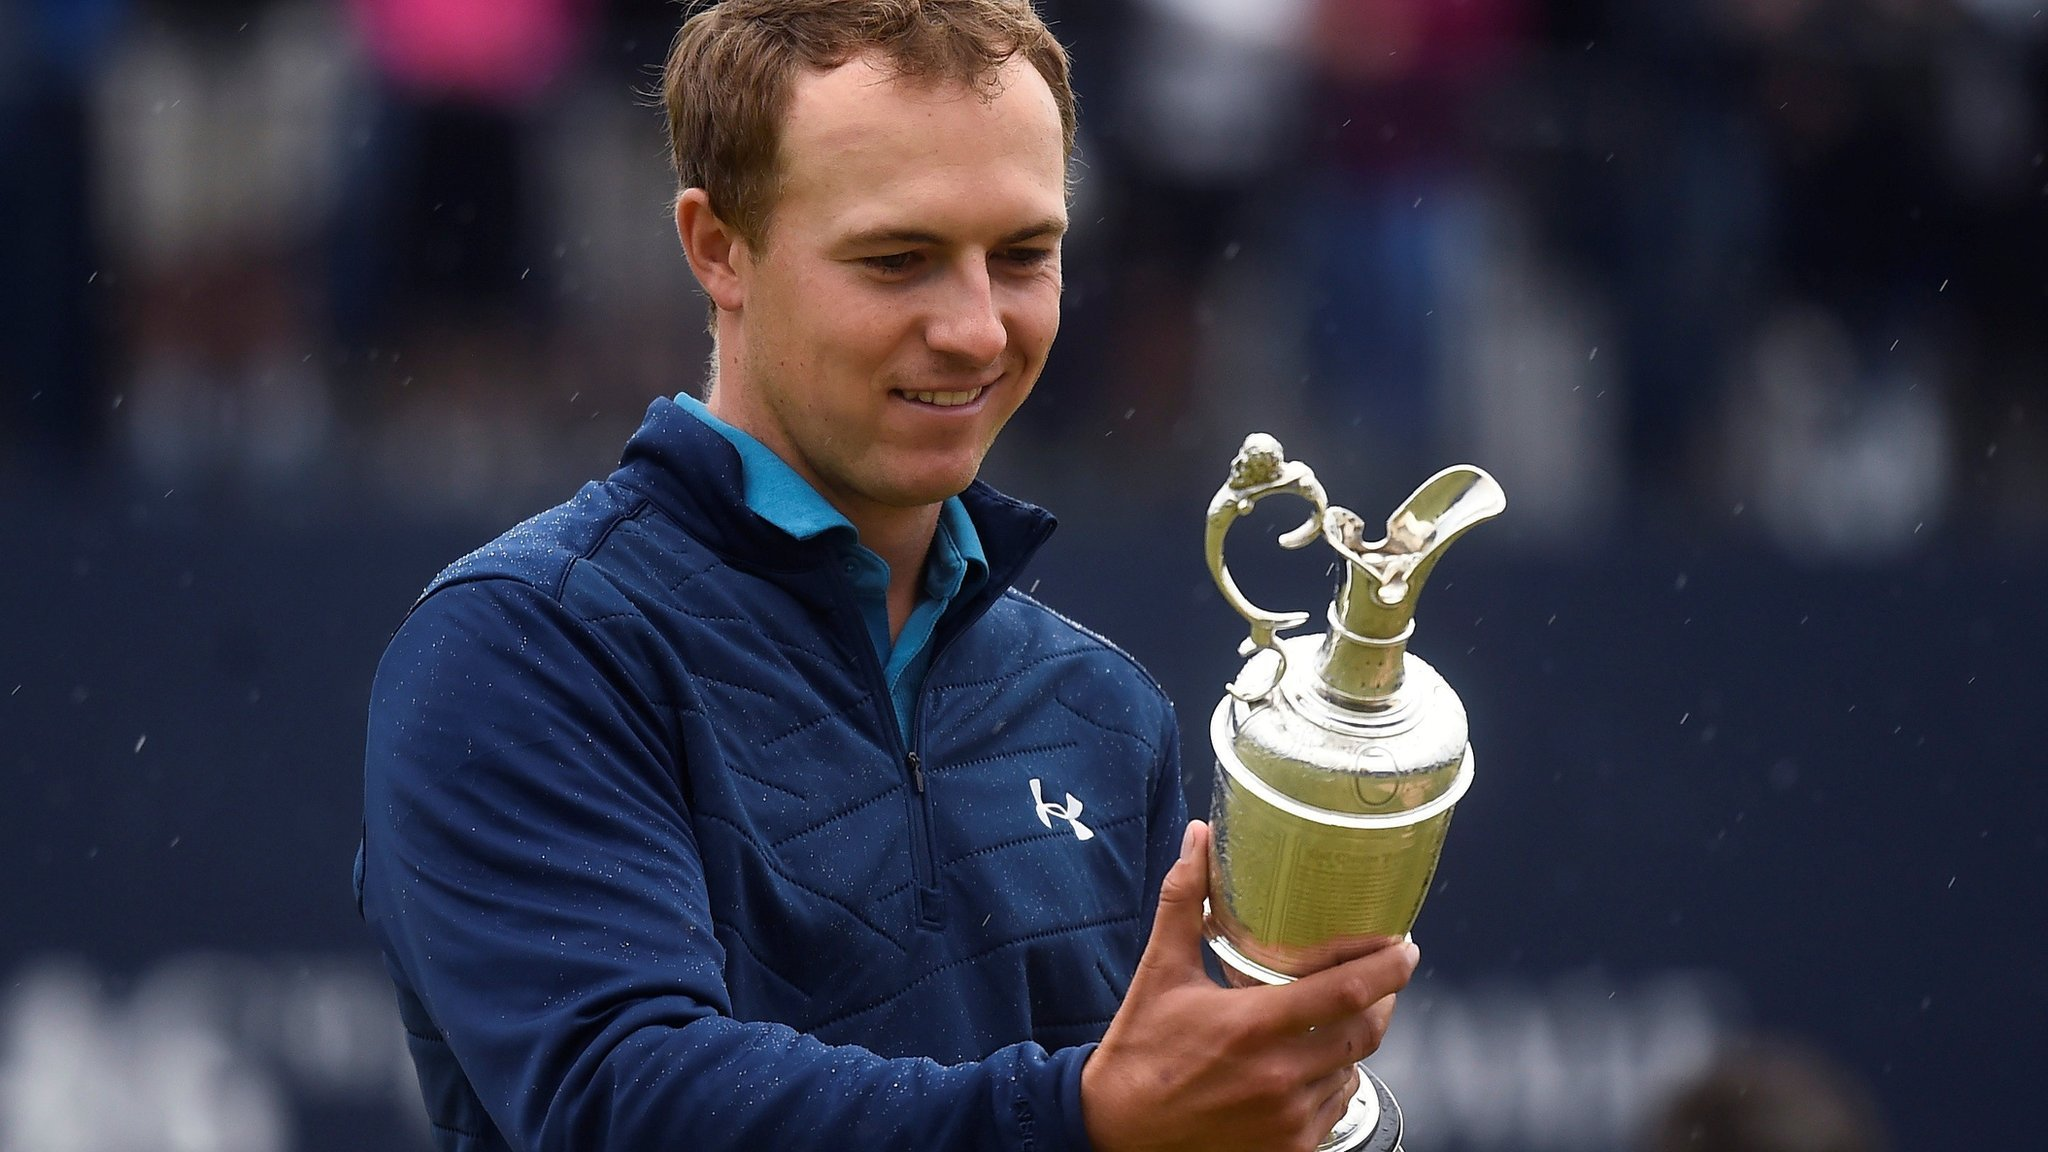 The Open 2017: Jordan Spieth will enjoy Birkdale win more than any other